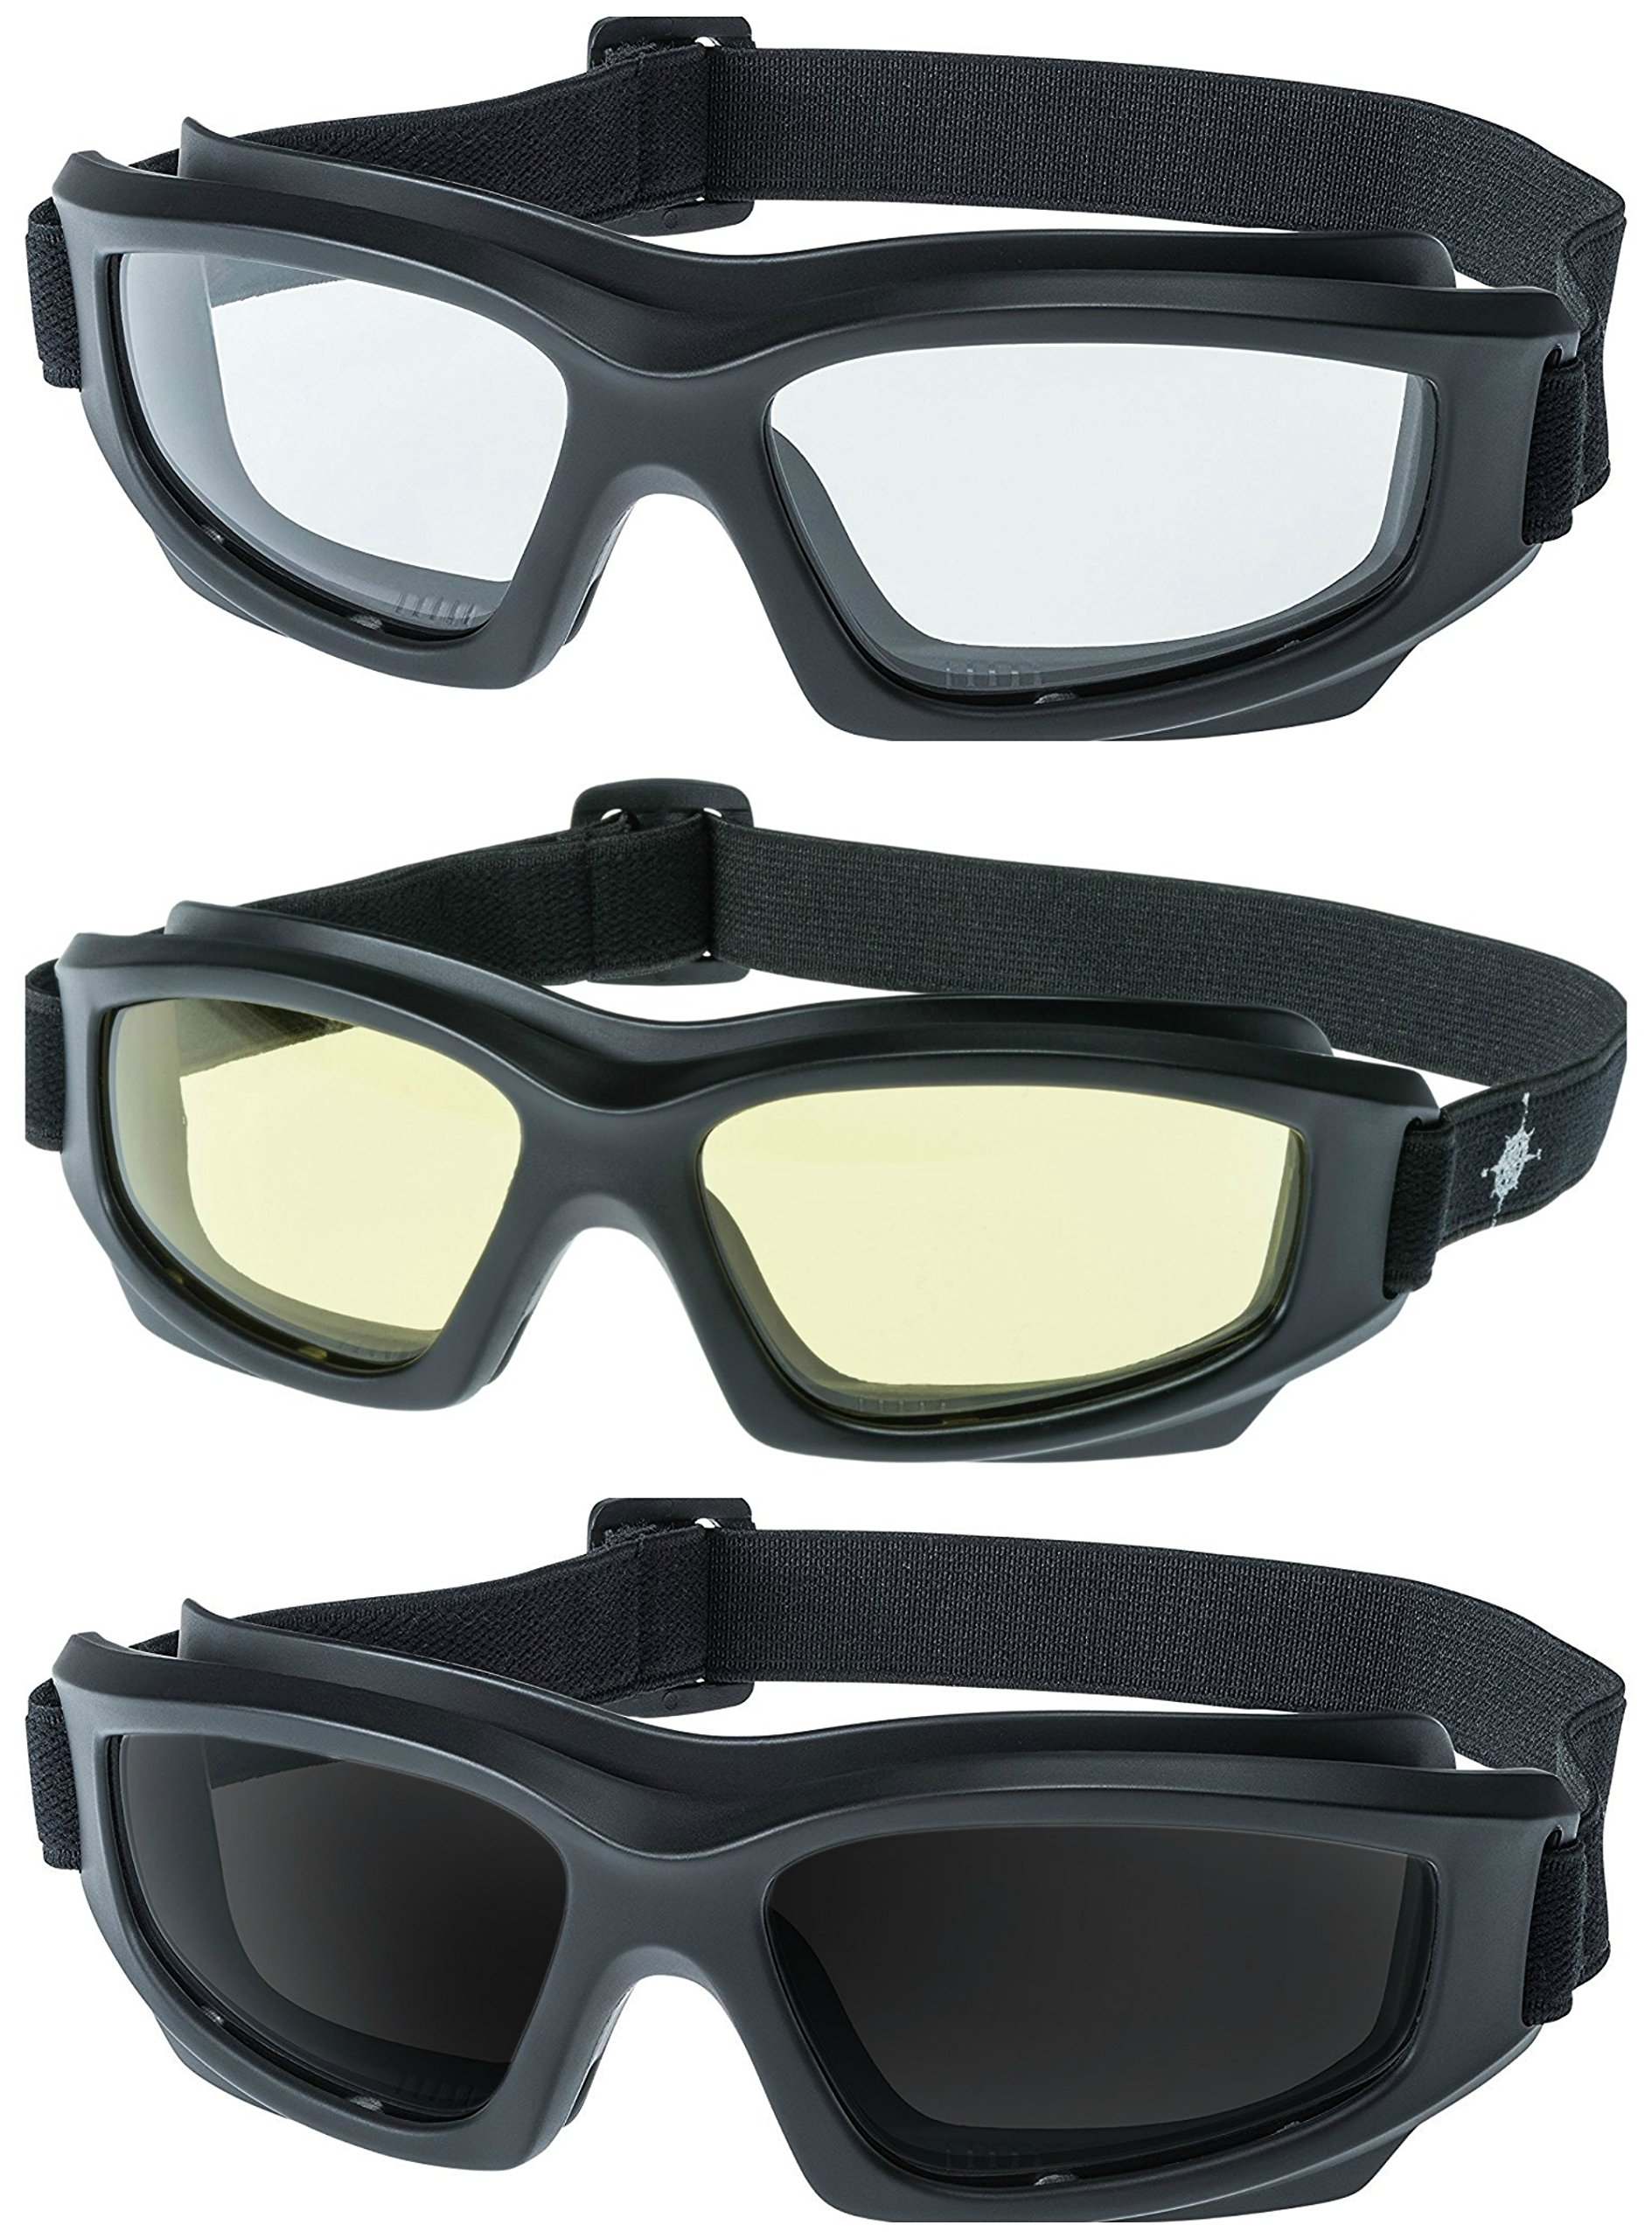 Motorcycle Riding Goggles: Heavy-Duty Riding Goggles''No Foam'' Design w/Hard Case, Microfiber Cleaning Cloth & Pouch Included (Set of 3)